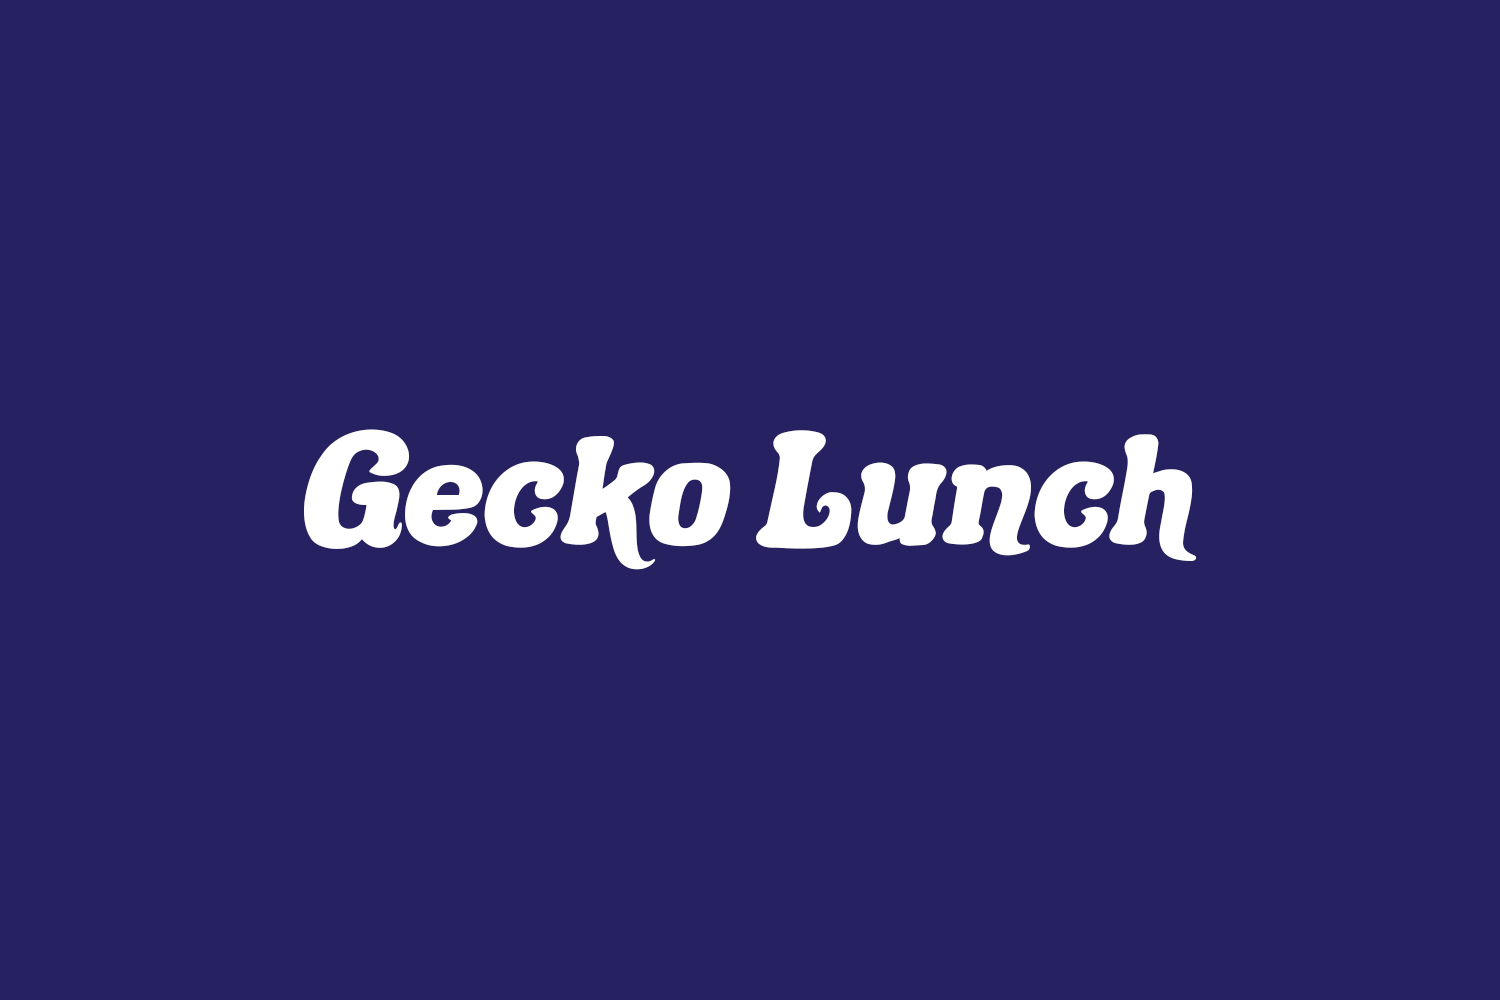 Gecko Lunch Free Font